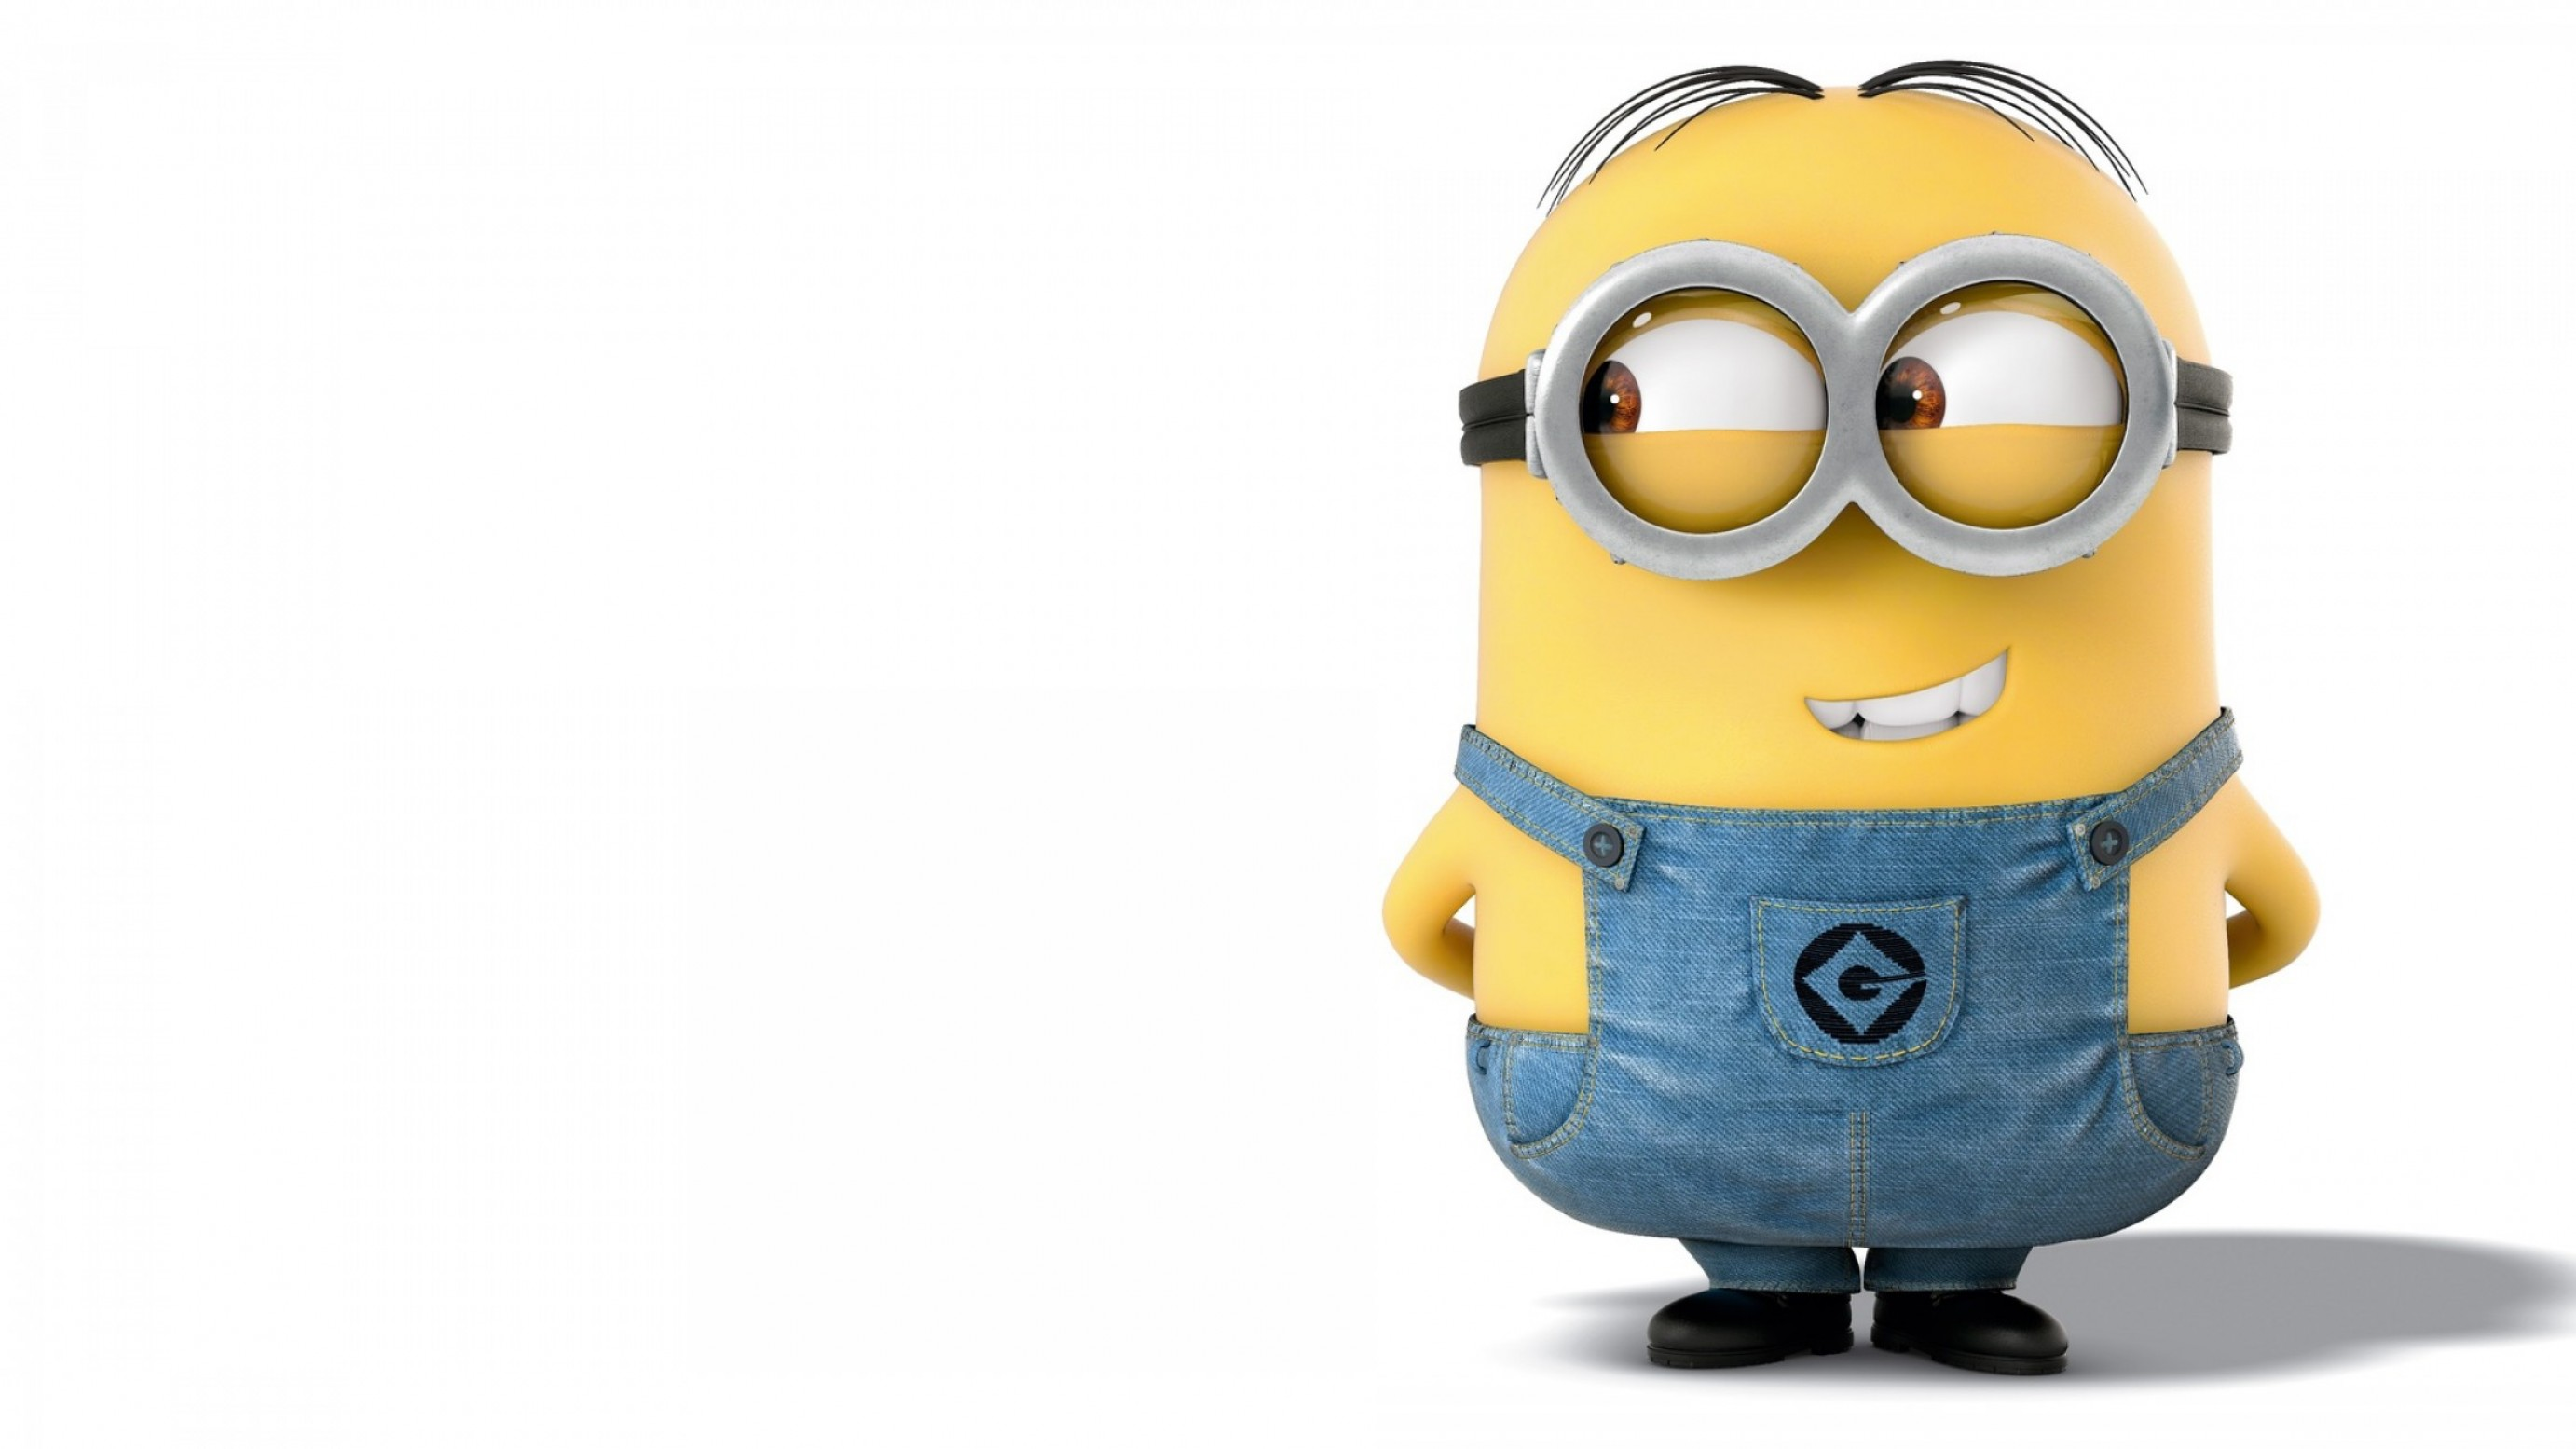 Dispicable Me Vectors House: Tags Despicable Me Minion Despicable Me Pose Attitude